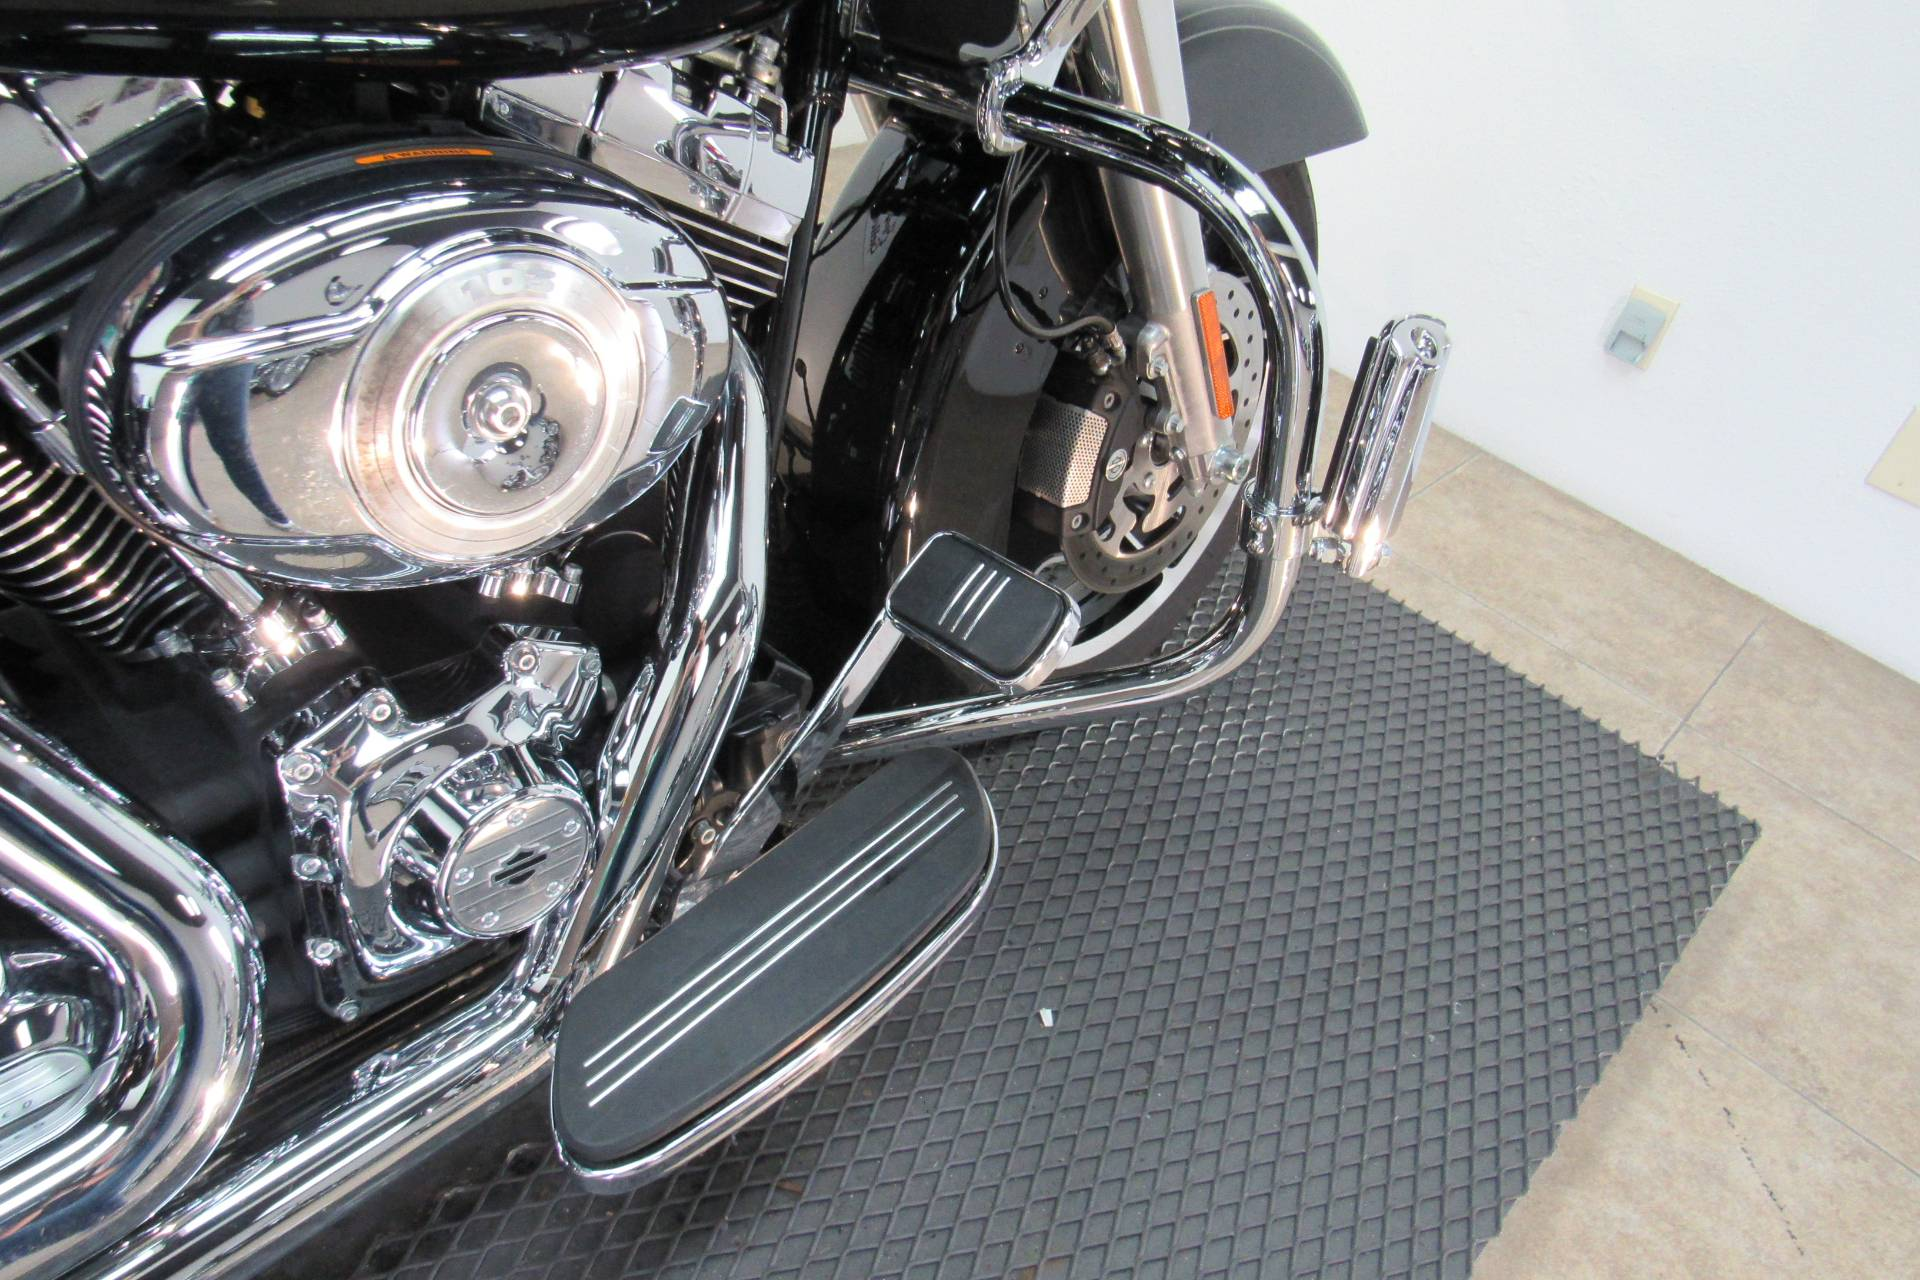 2013 Harley-Davidson Road Glide® Custom in Temecula, California - Photo 13